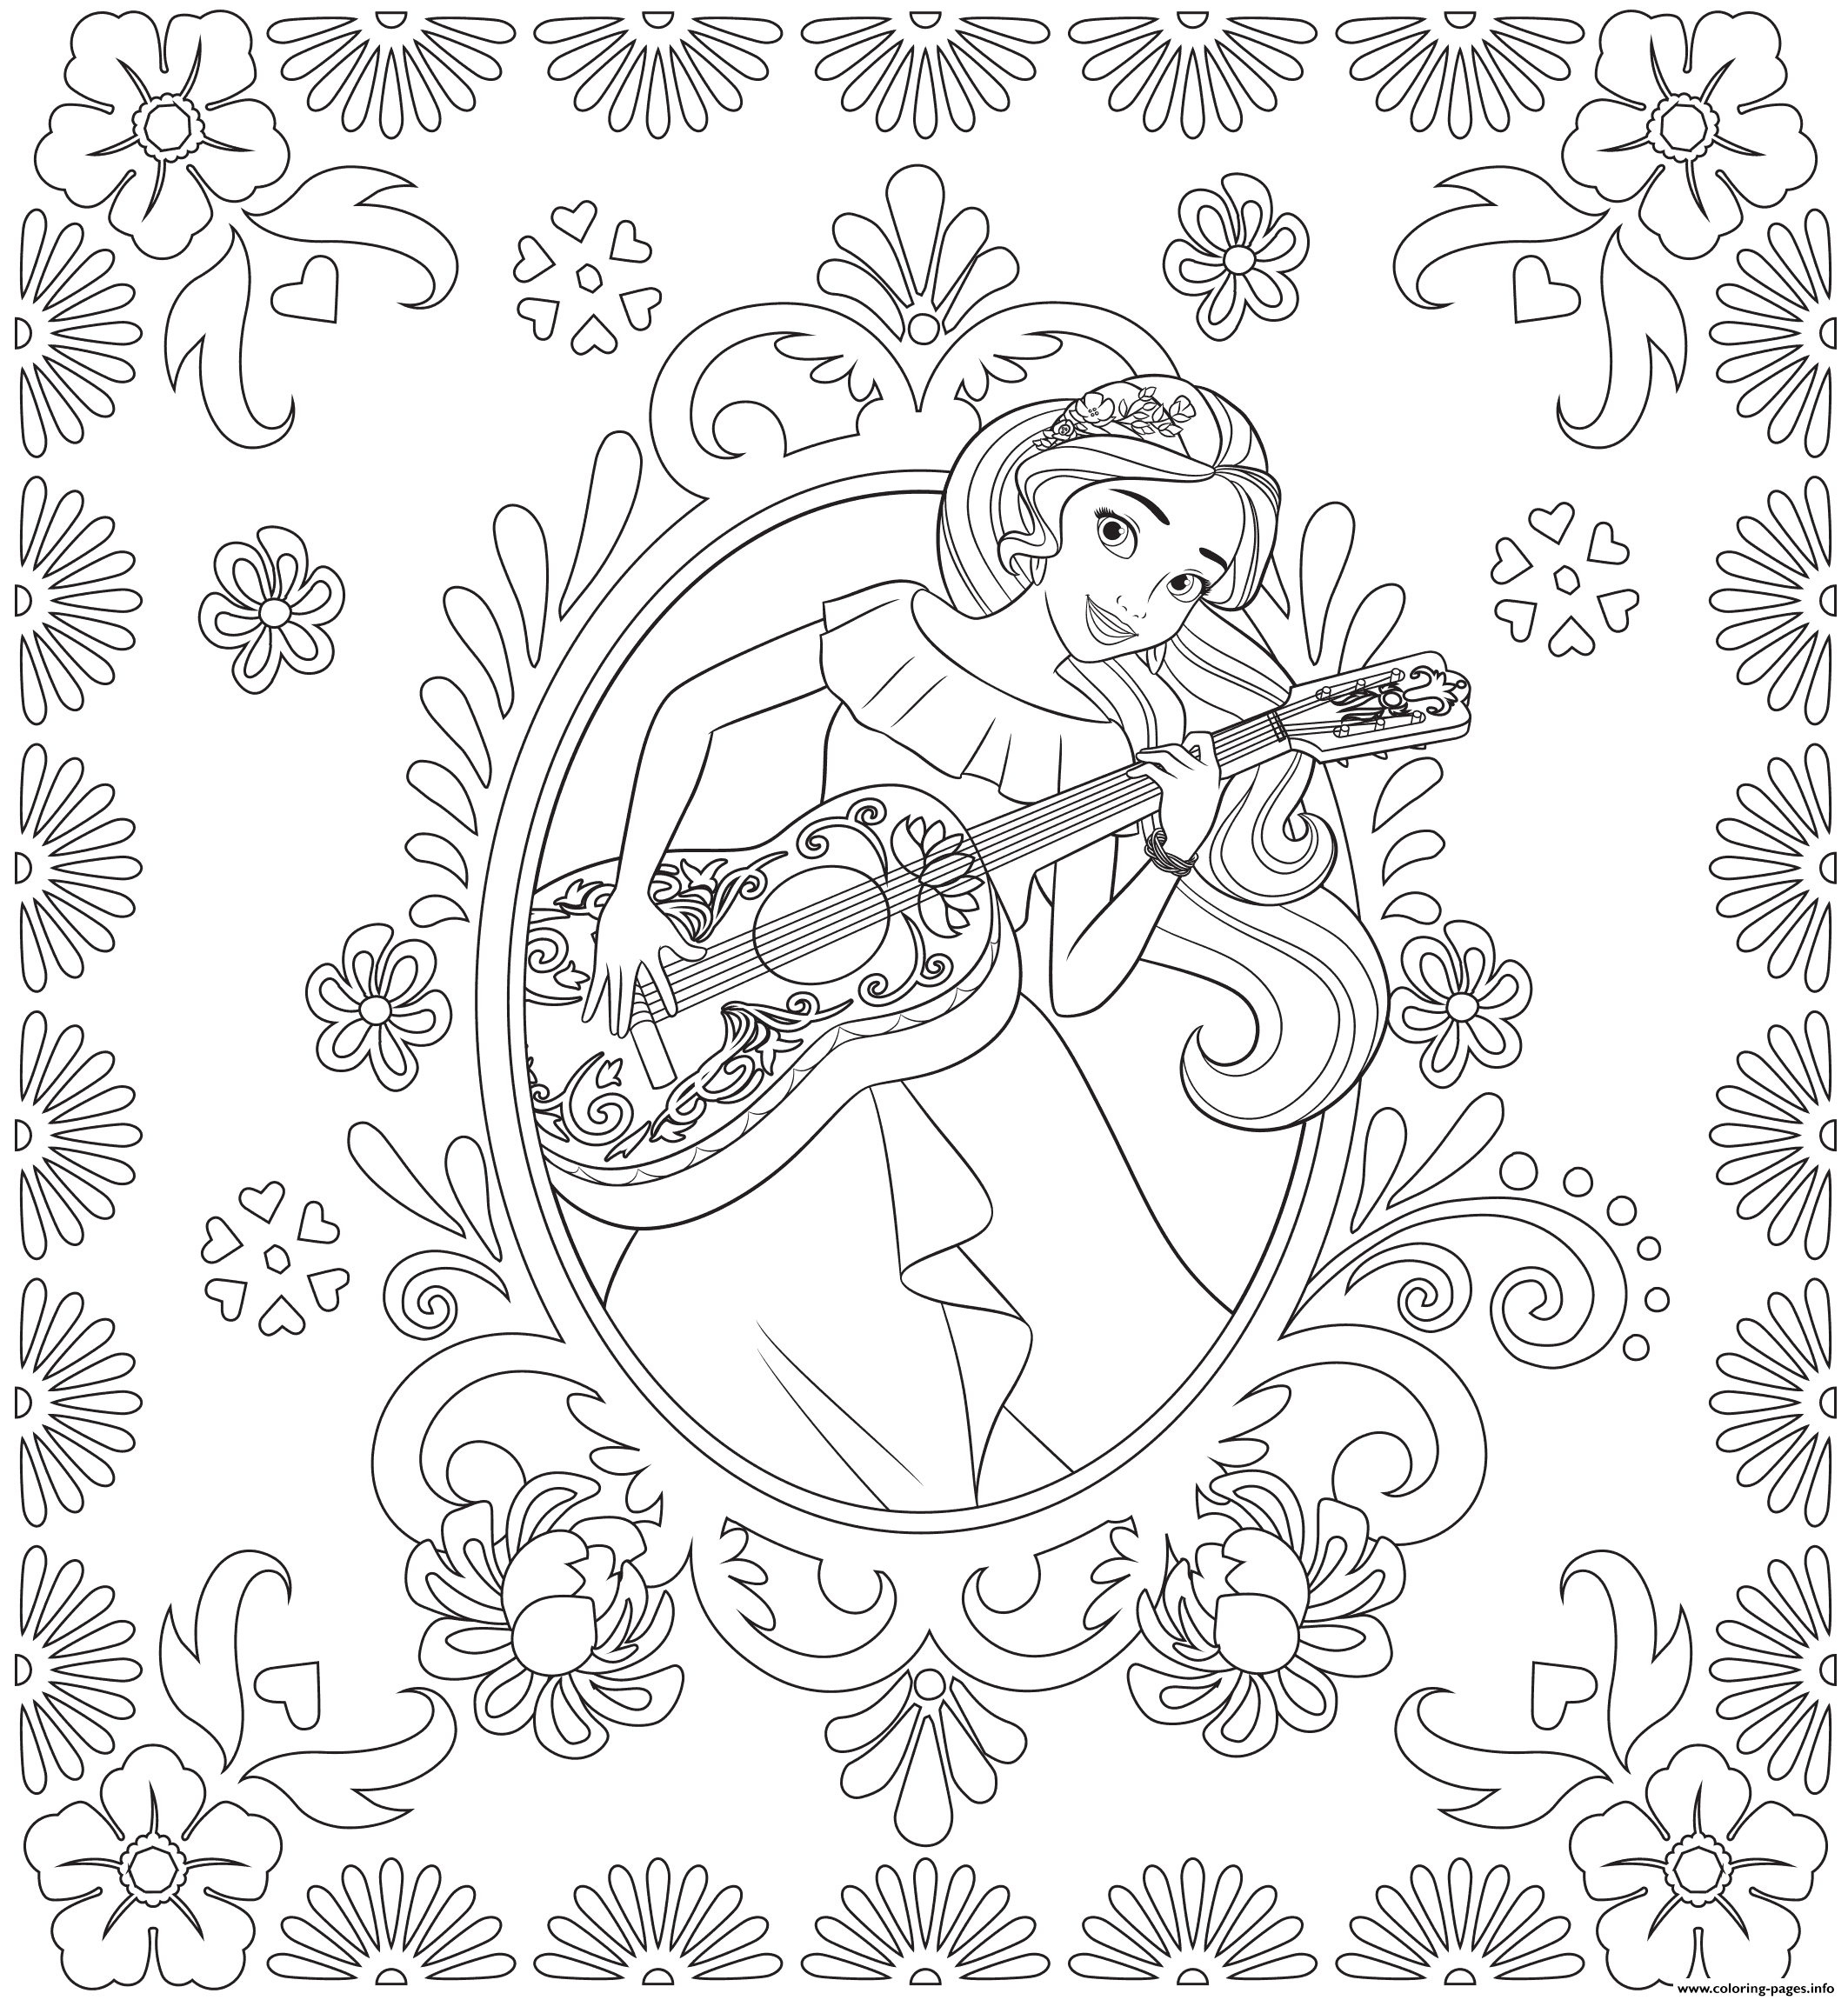 graphic regarding Elena of Avalor Coloring Pages Printable called Princess Elena Of Avalor Disney Princess Coloring Internet pages